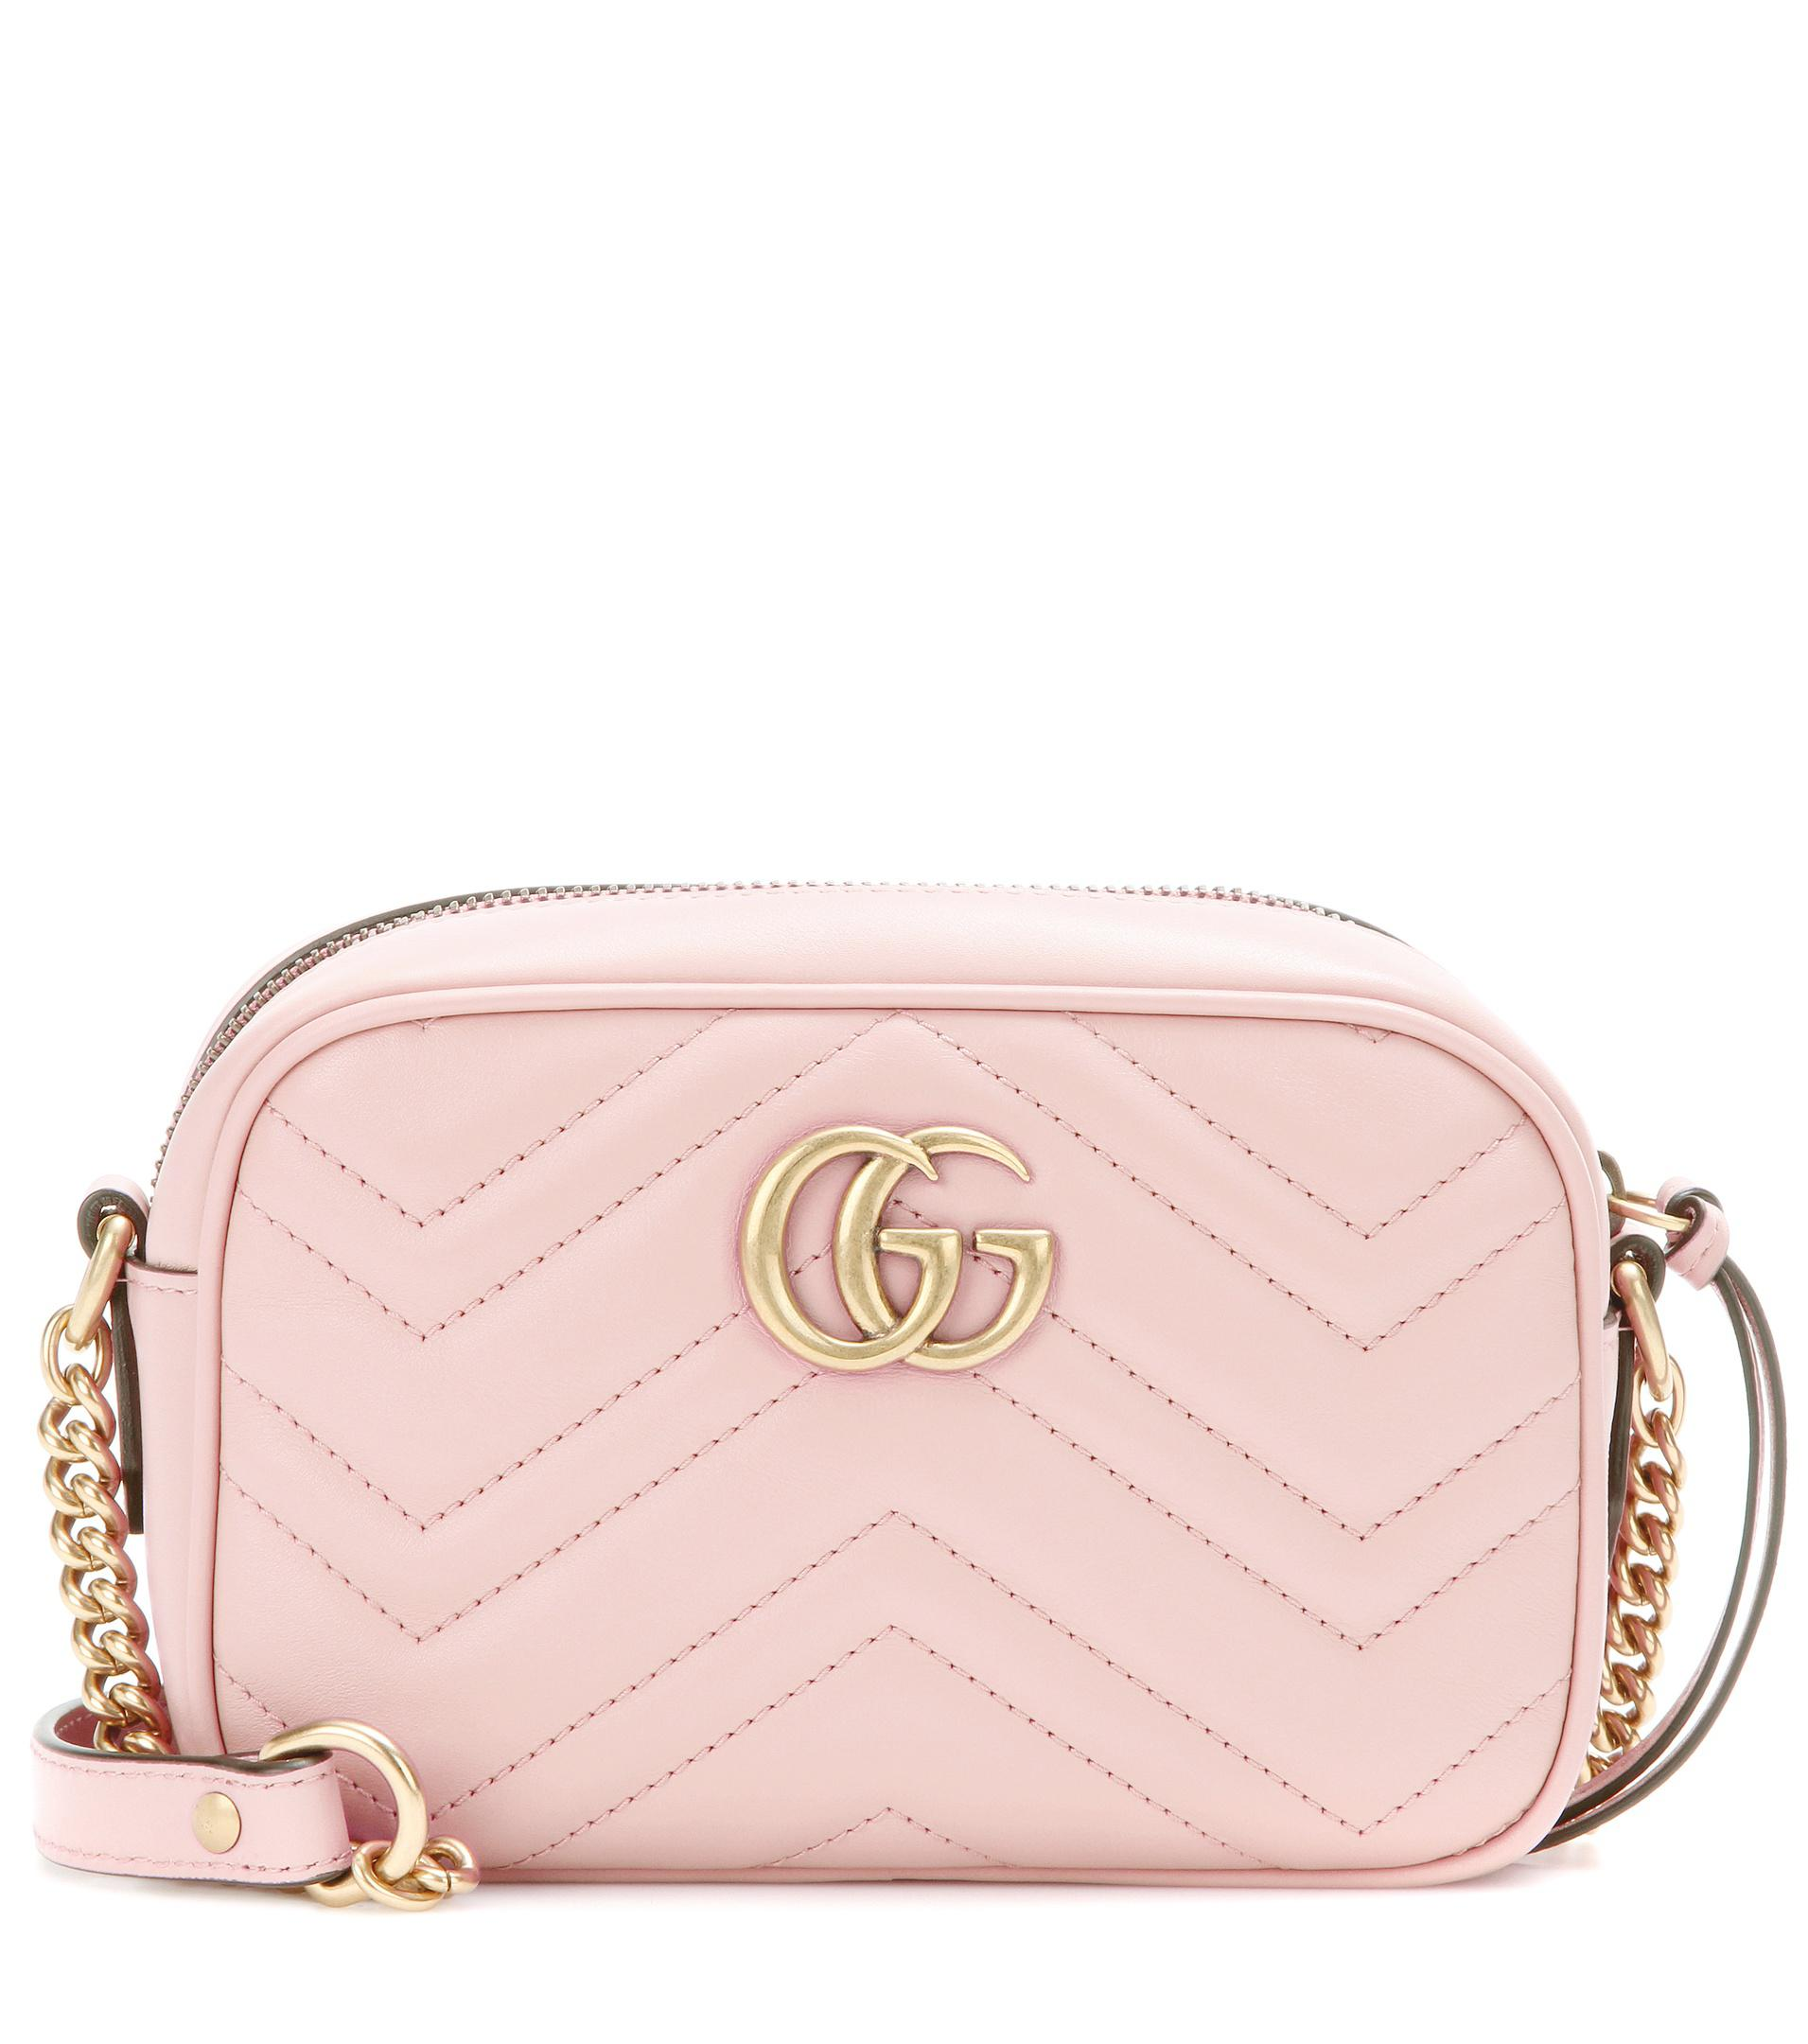 e87651525673 Gucci Gg Marmont Mini Matelassé Leather Crossbody Bag in Pink - Lyst